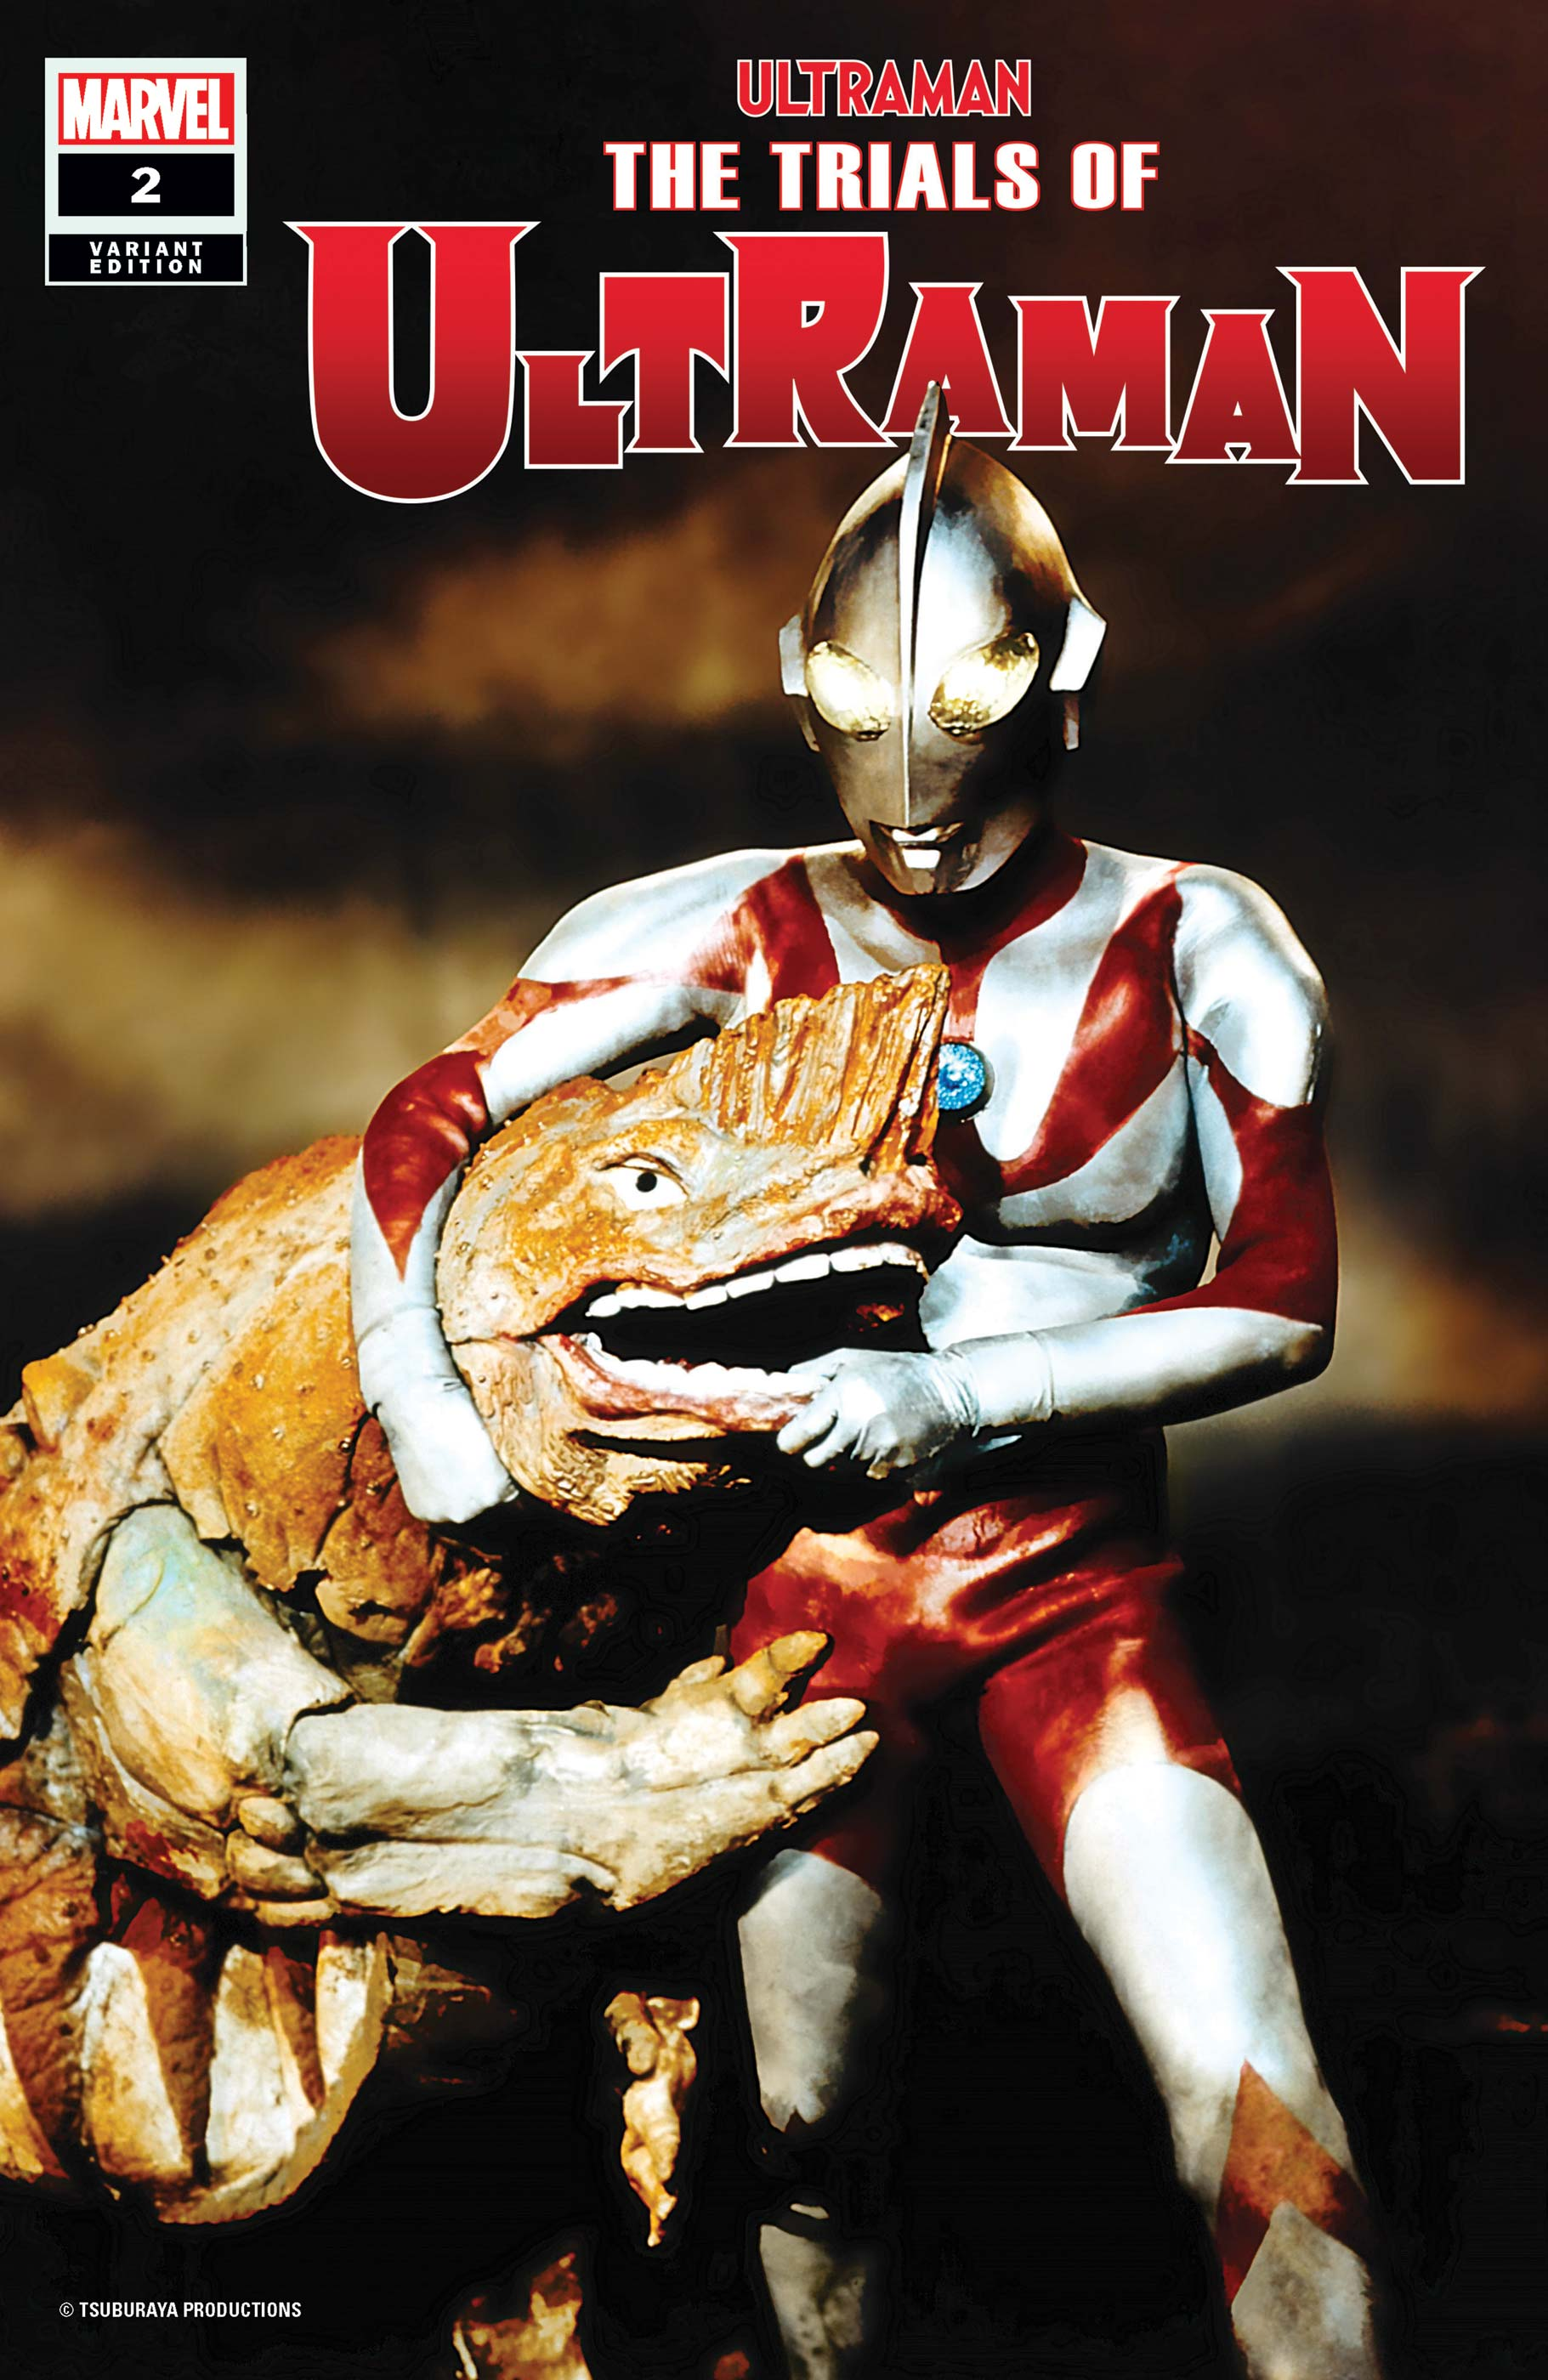 The Trials of Ultraman (2021) #2 (Variant)